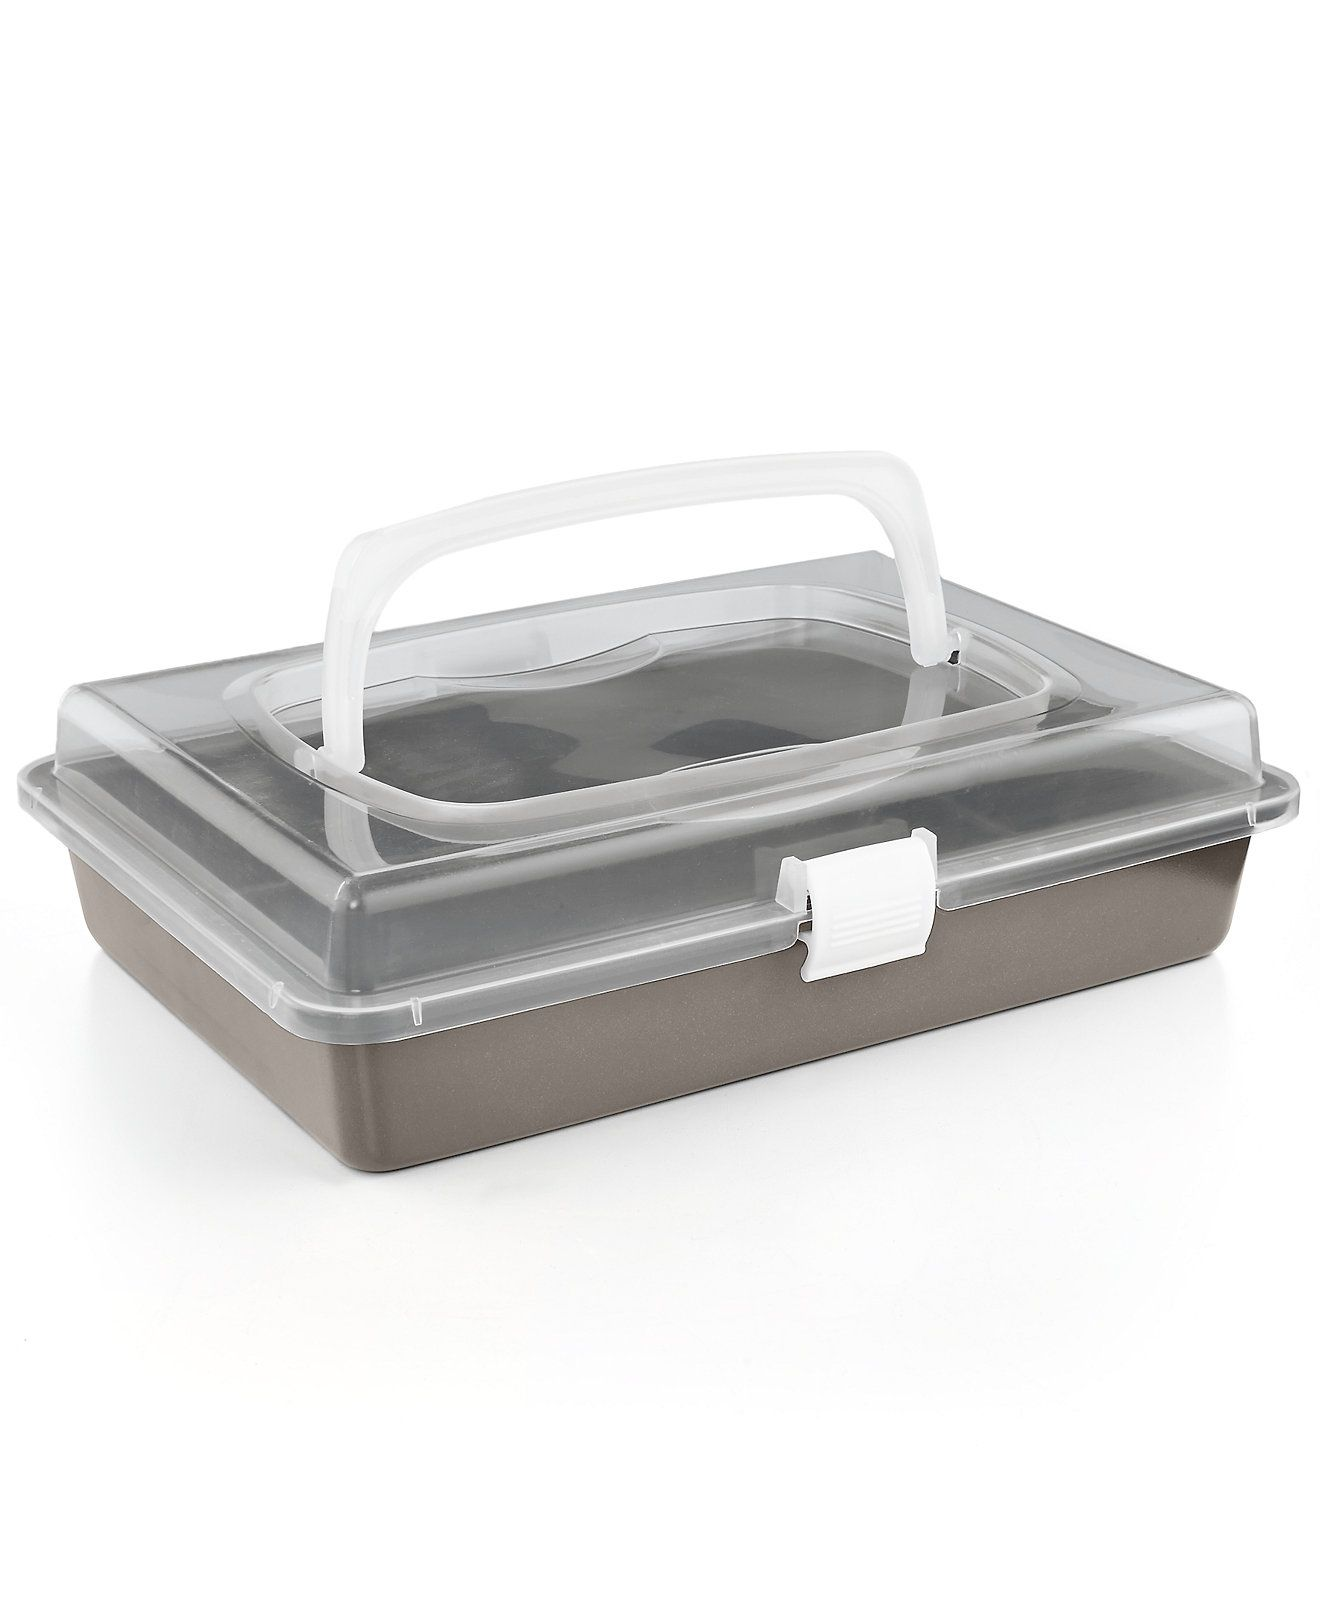 23++ 9x13 cake pan with sliding lid ideas